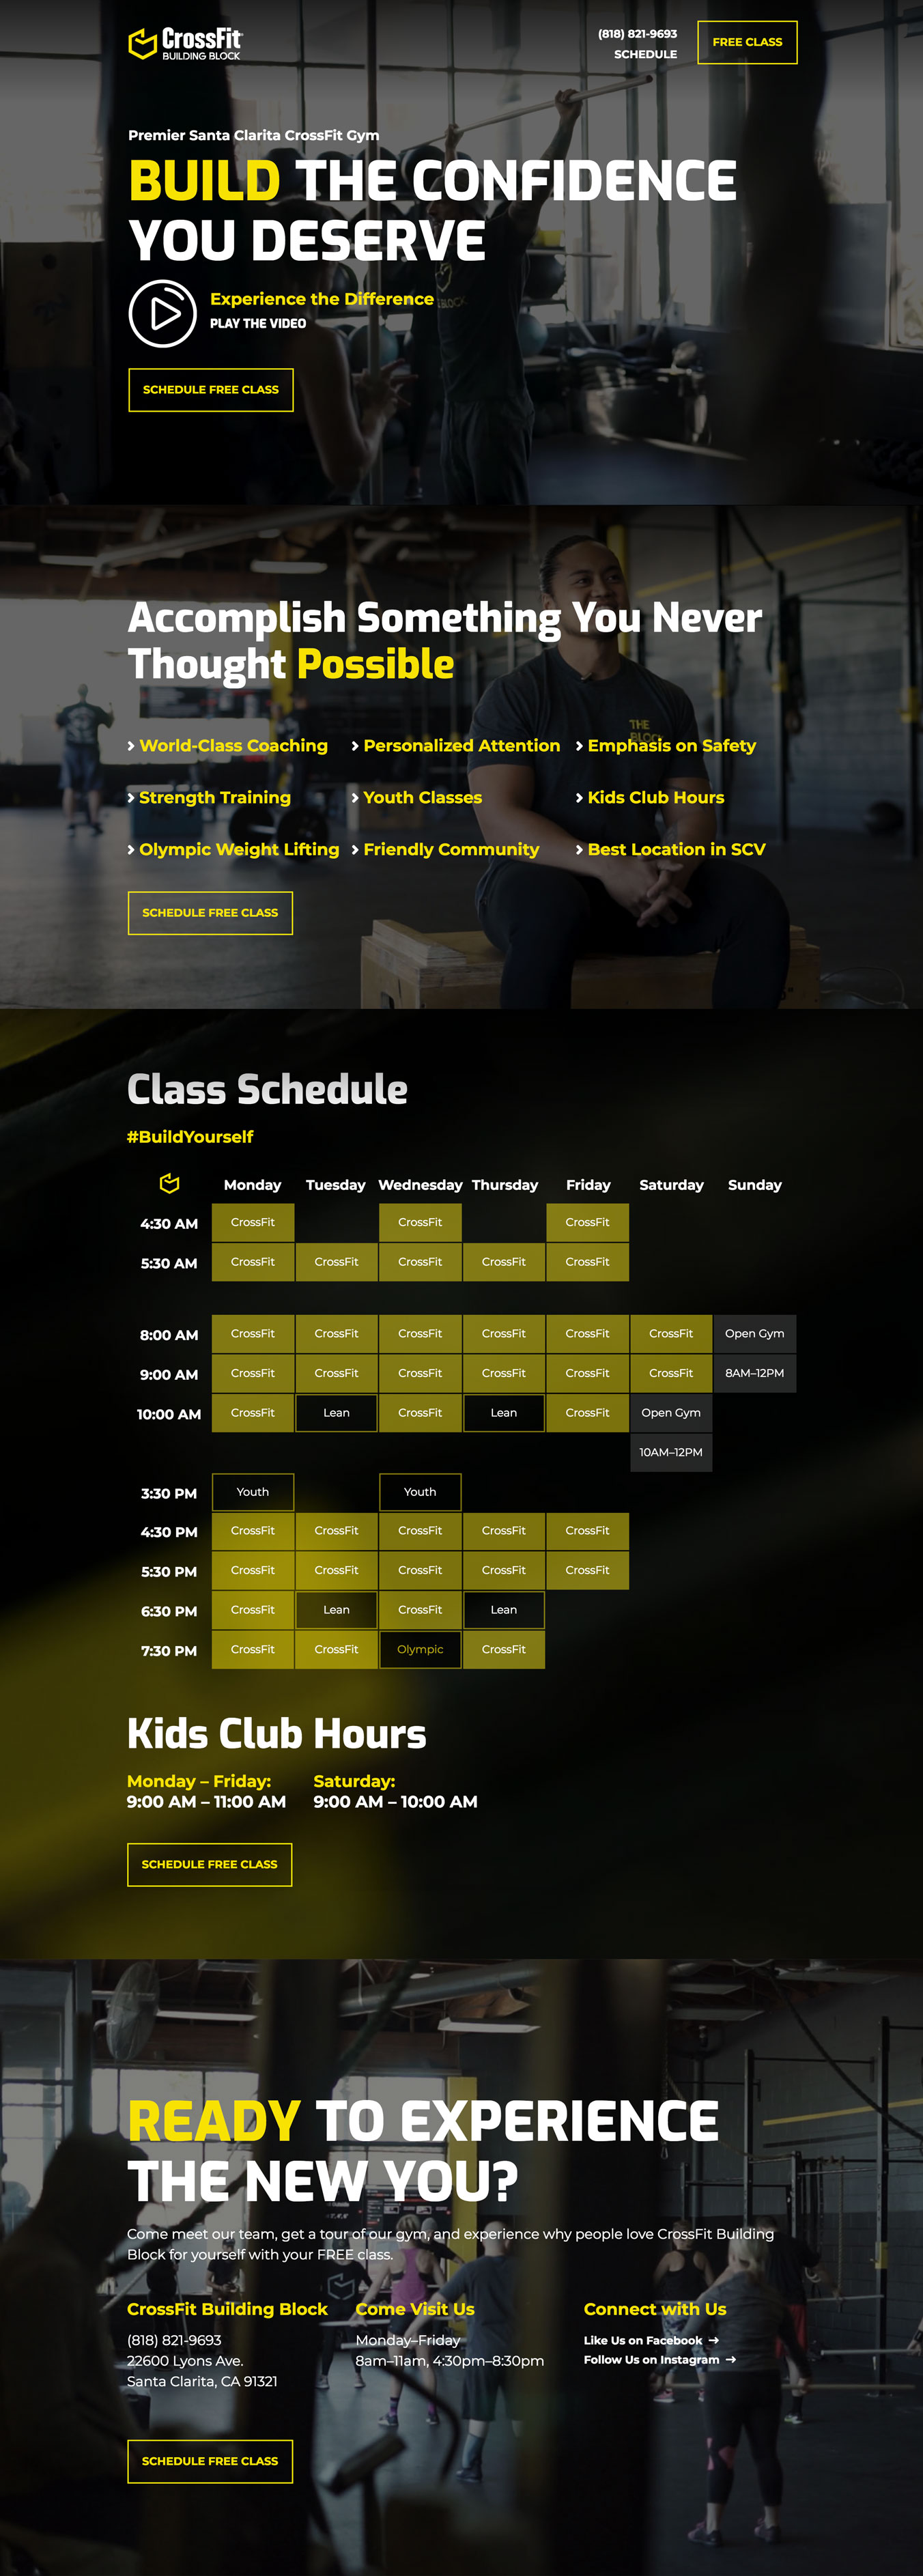 Landing Page design for a CrossFit gym.